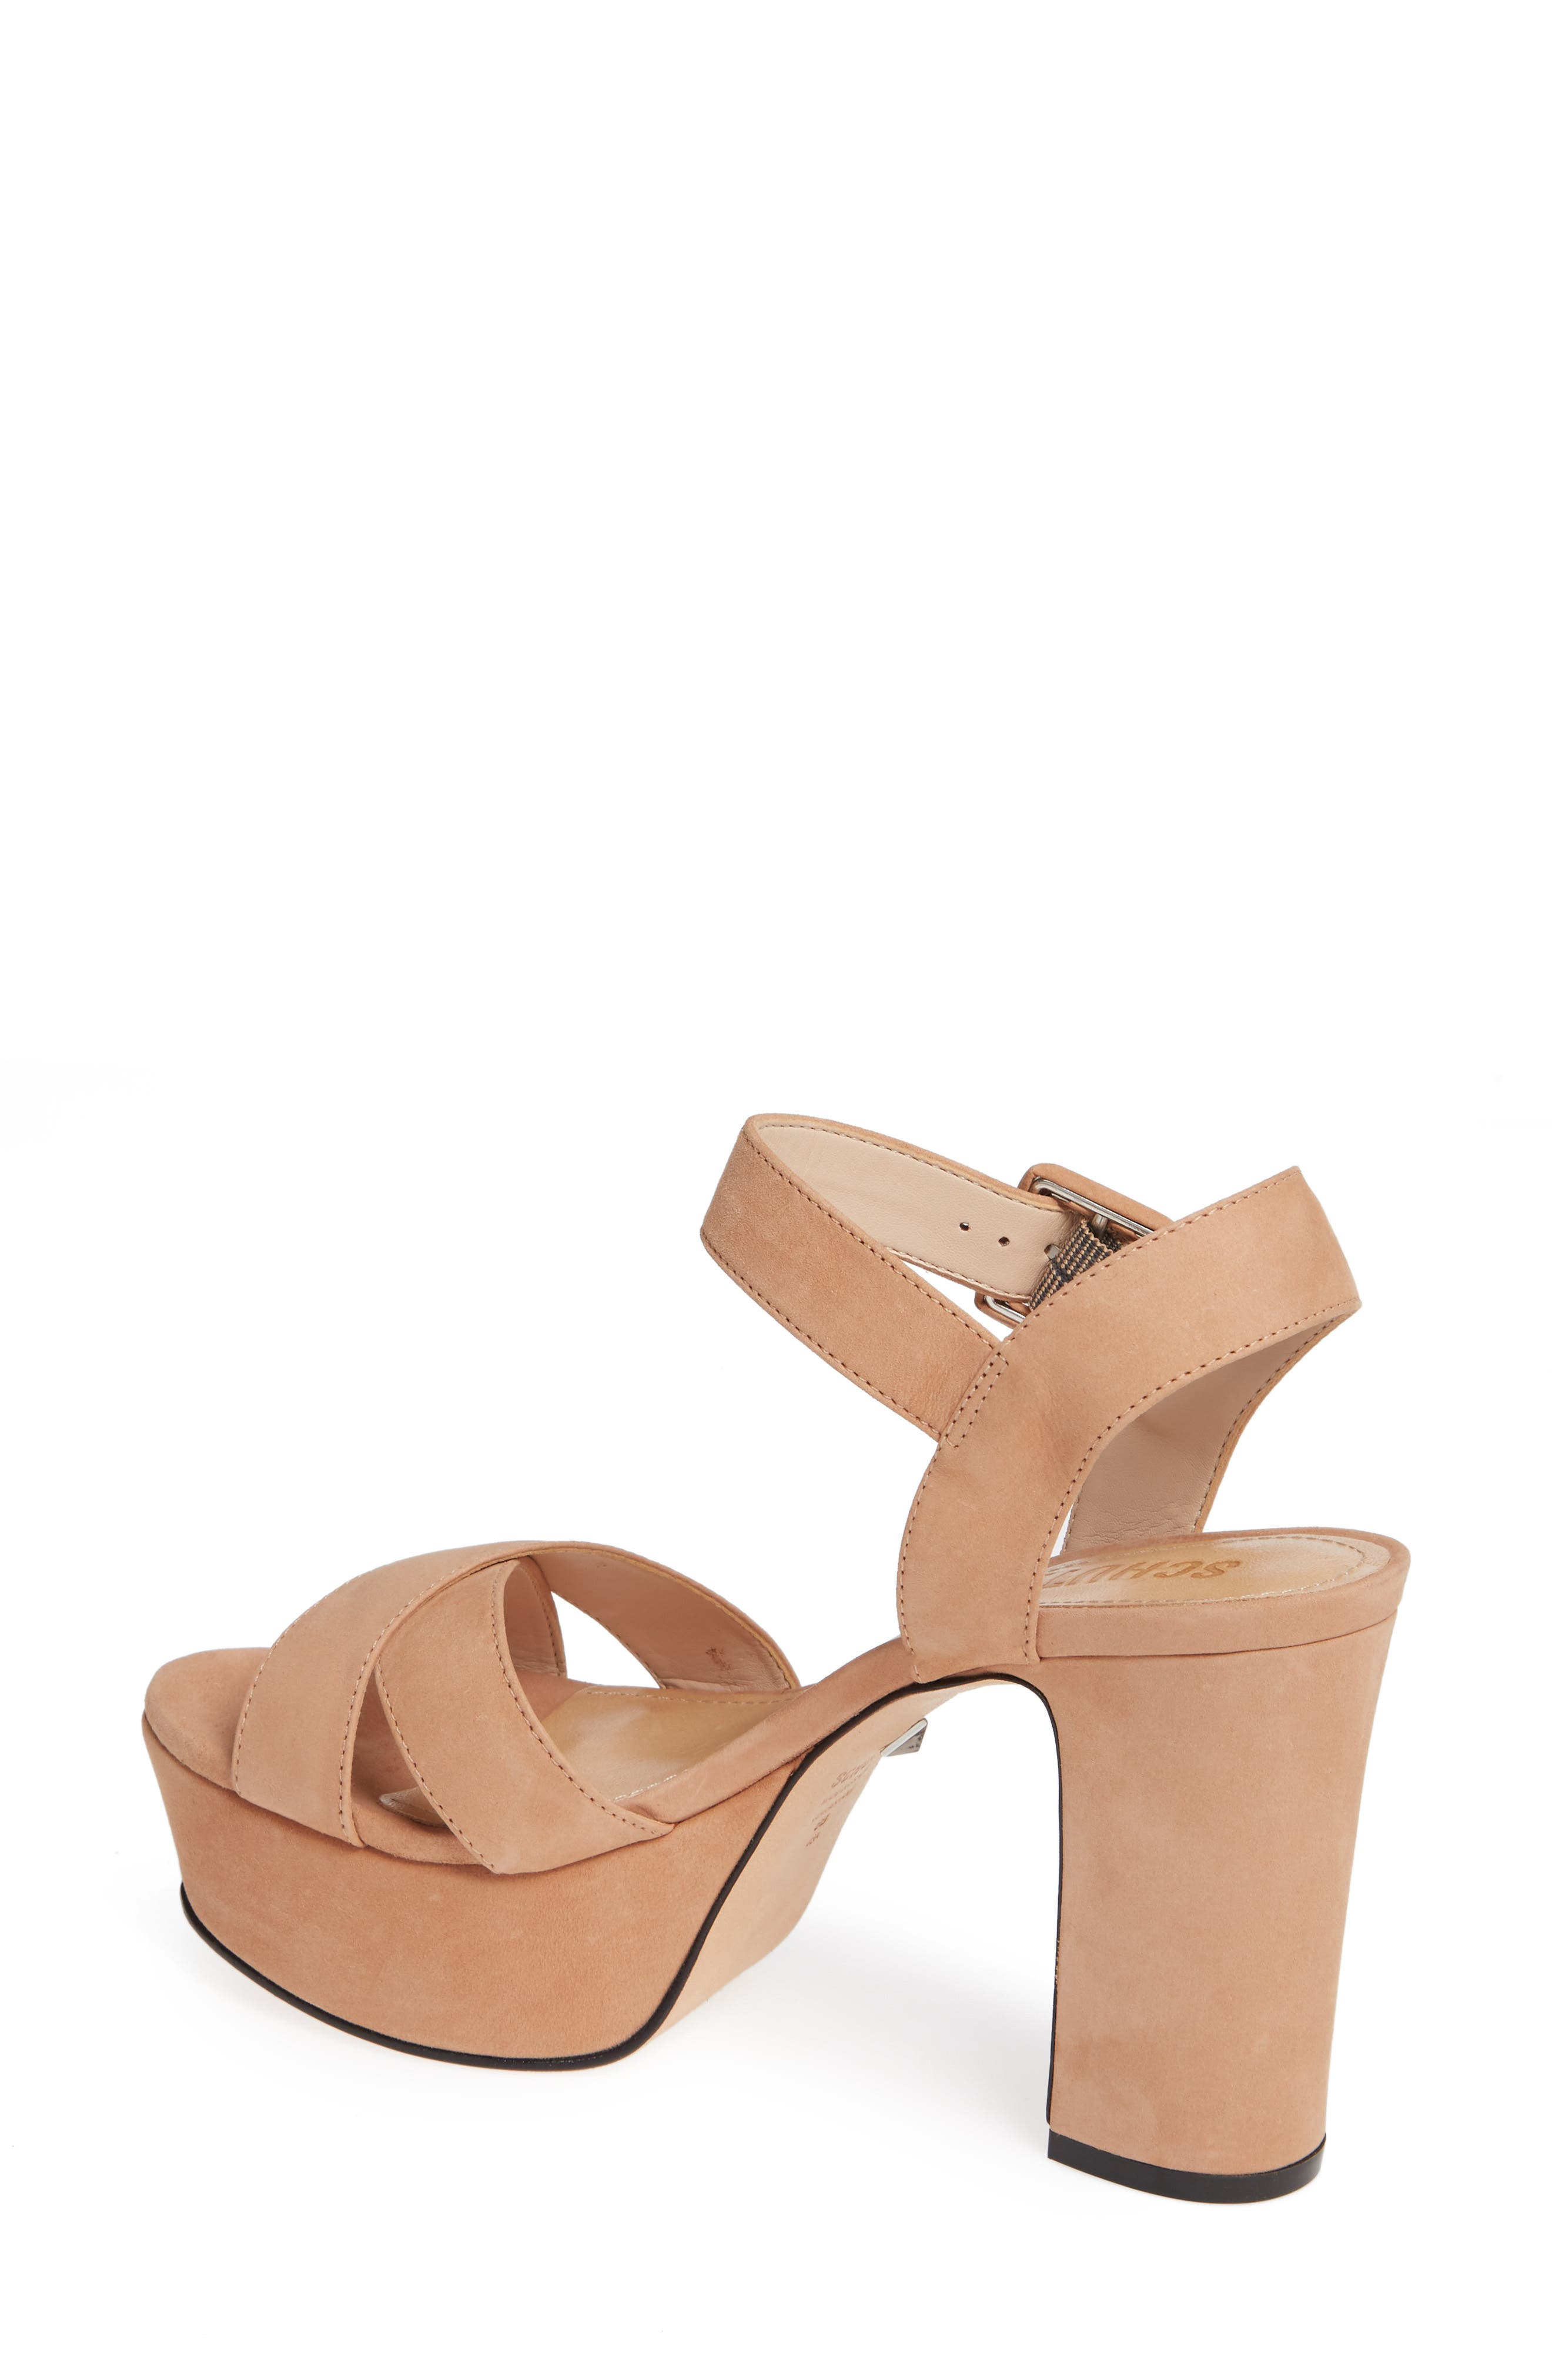 Tulia Sandal,                             Alternate thumbnail 2, color,                             HONEY BEIGE NUBUCK